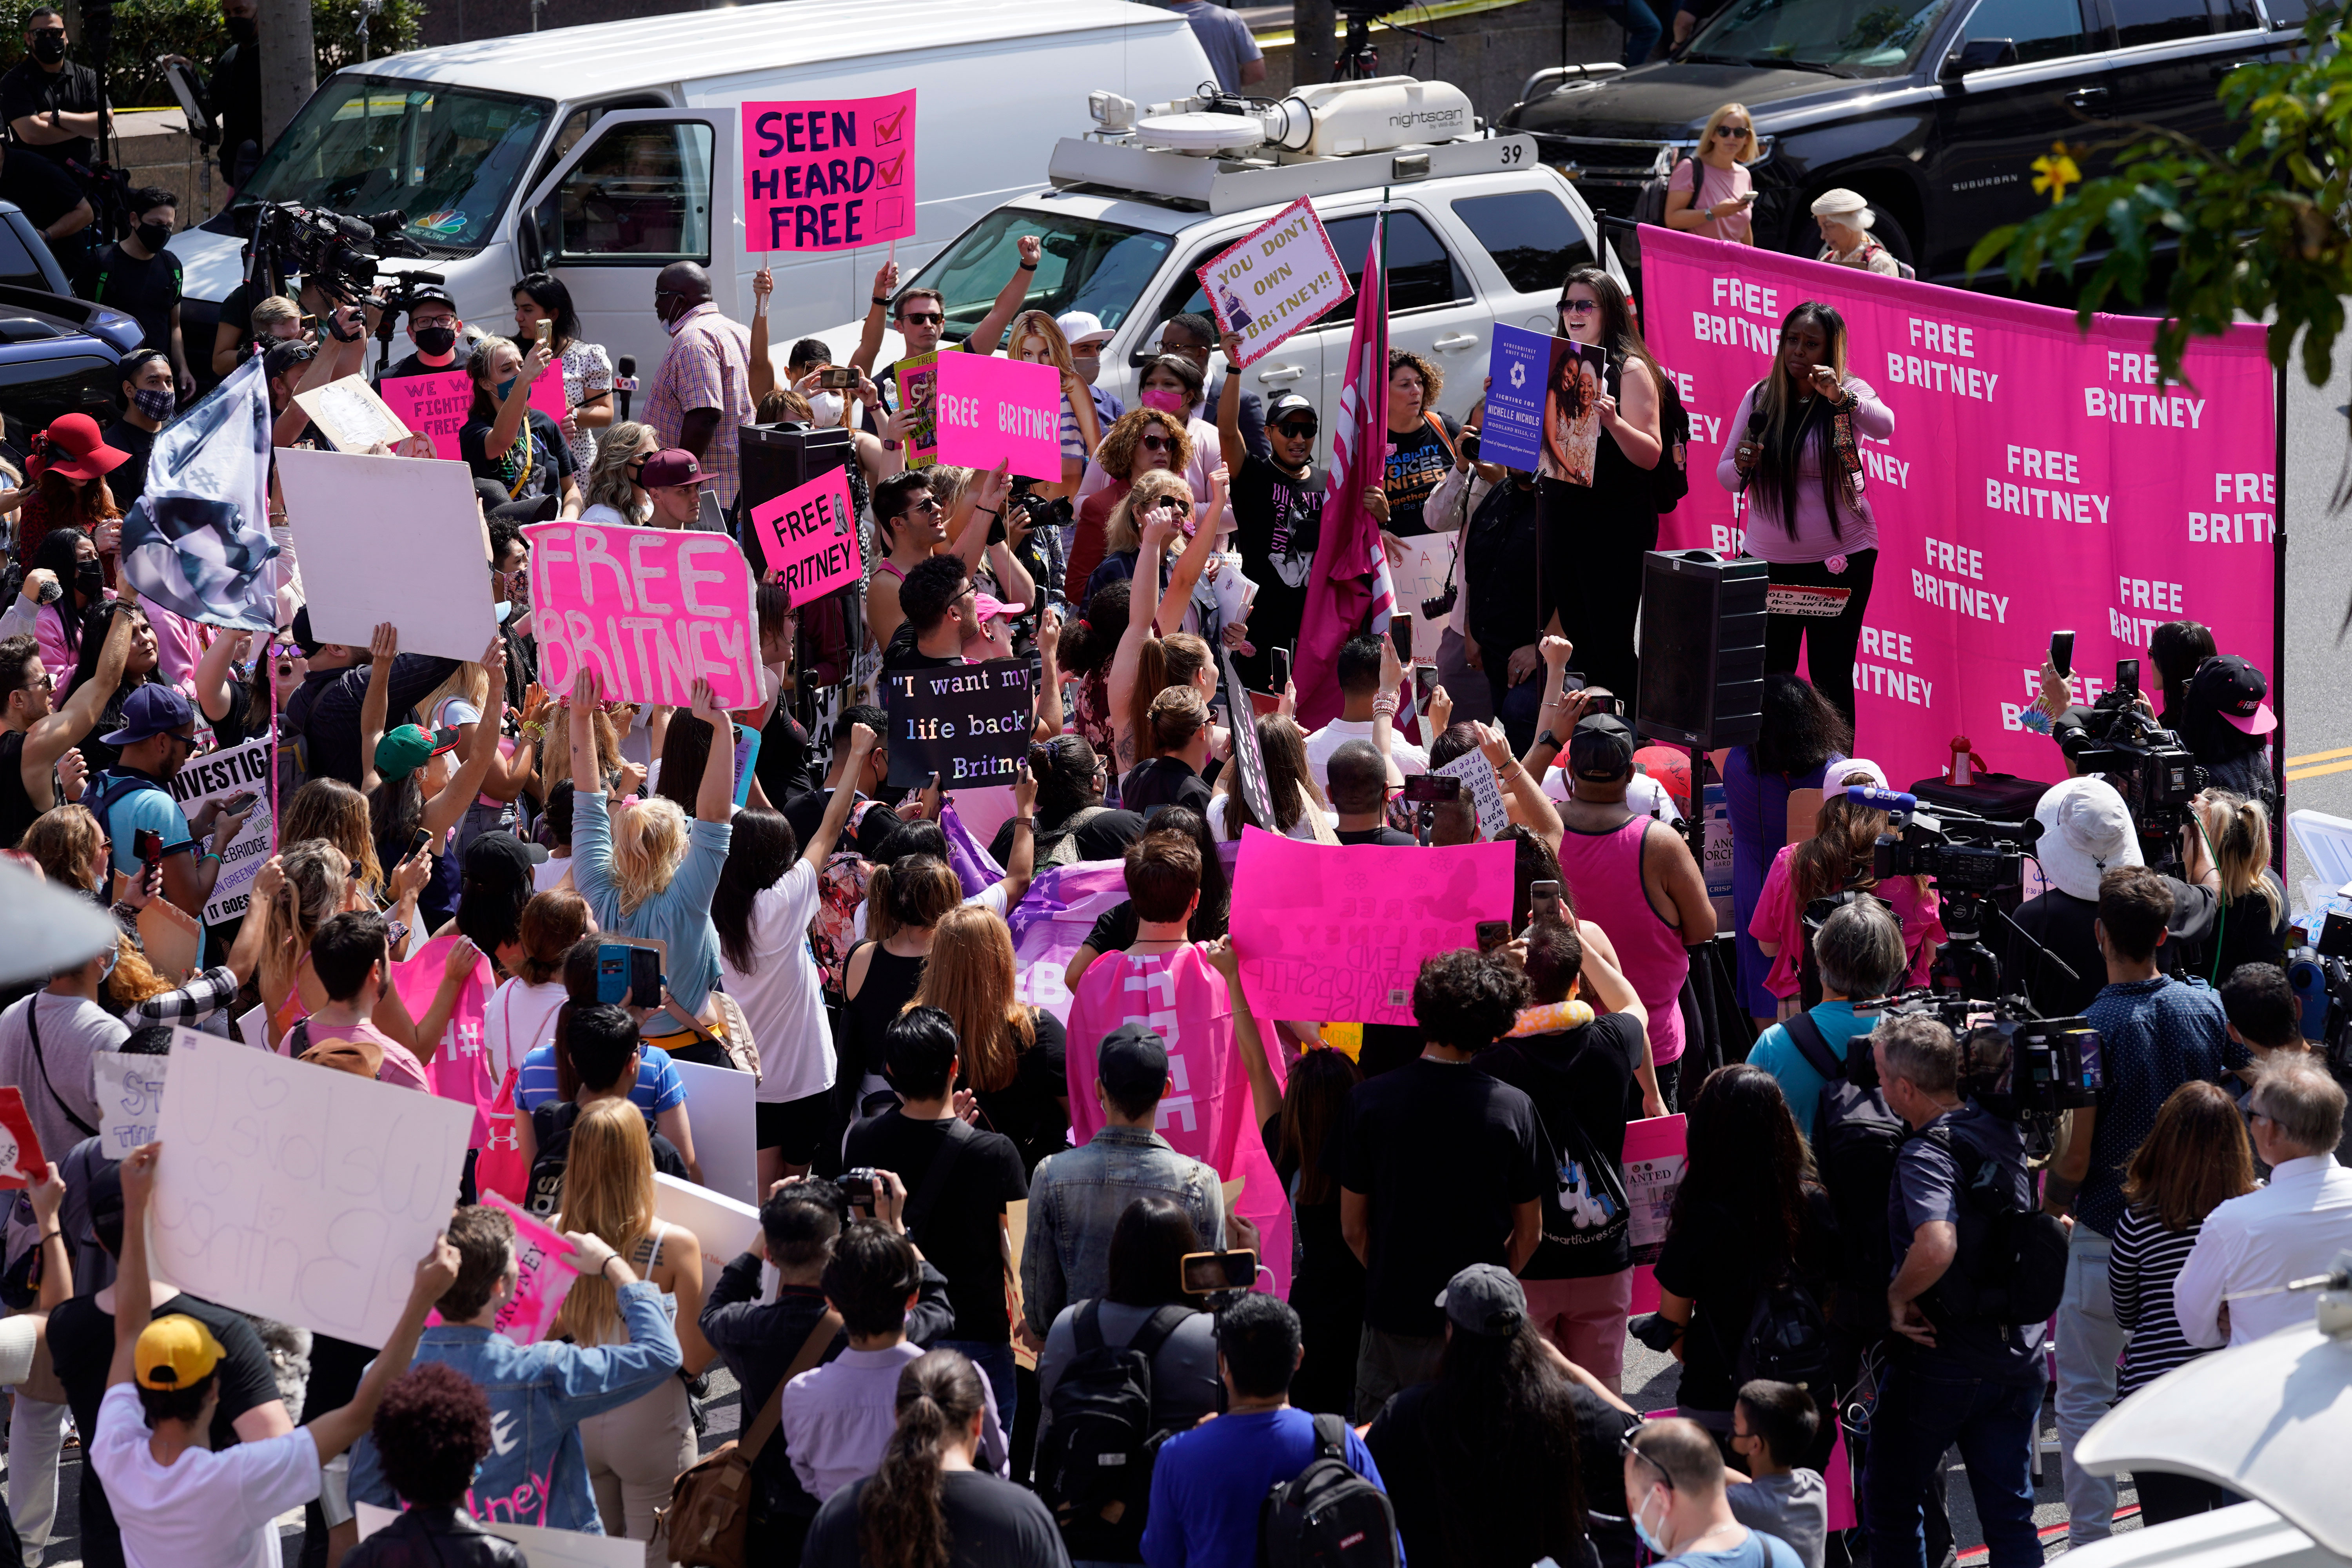 Britney Spears supporters demonstrate outside the Stanley Mosk Courthouse in Los Angeles on September 29.